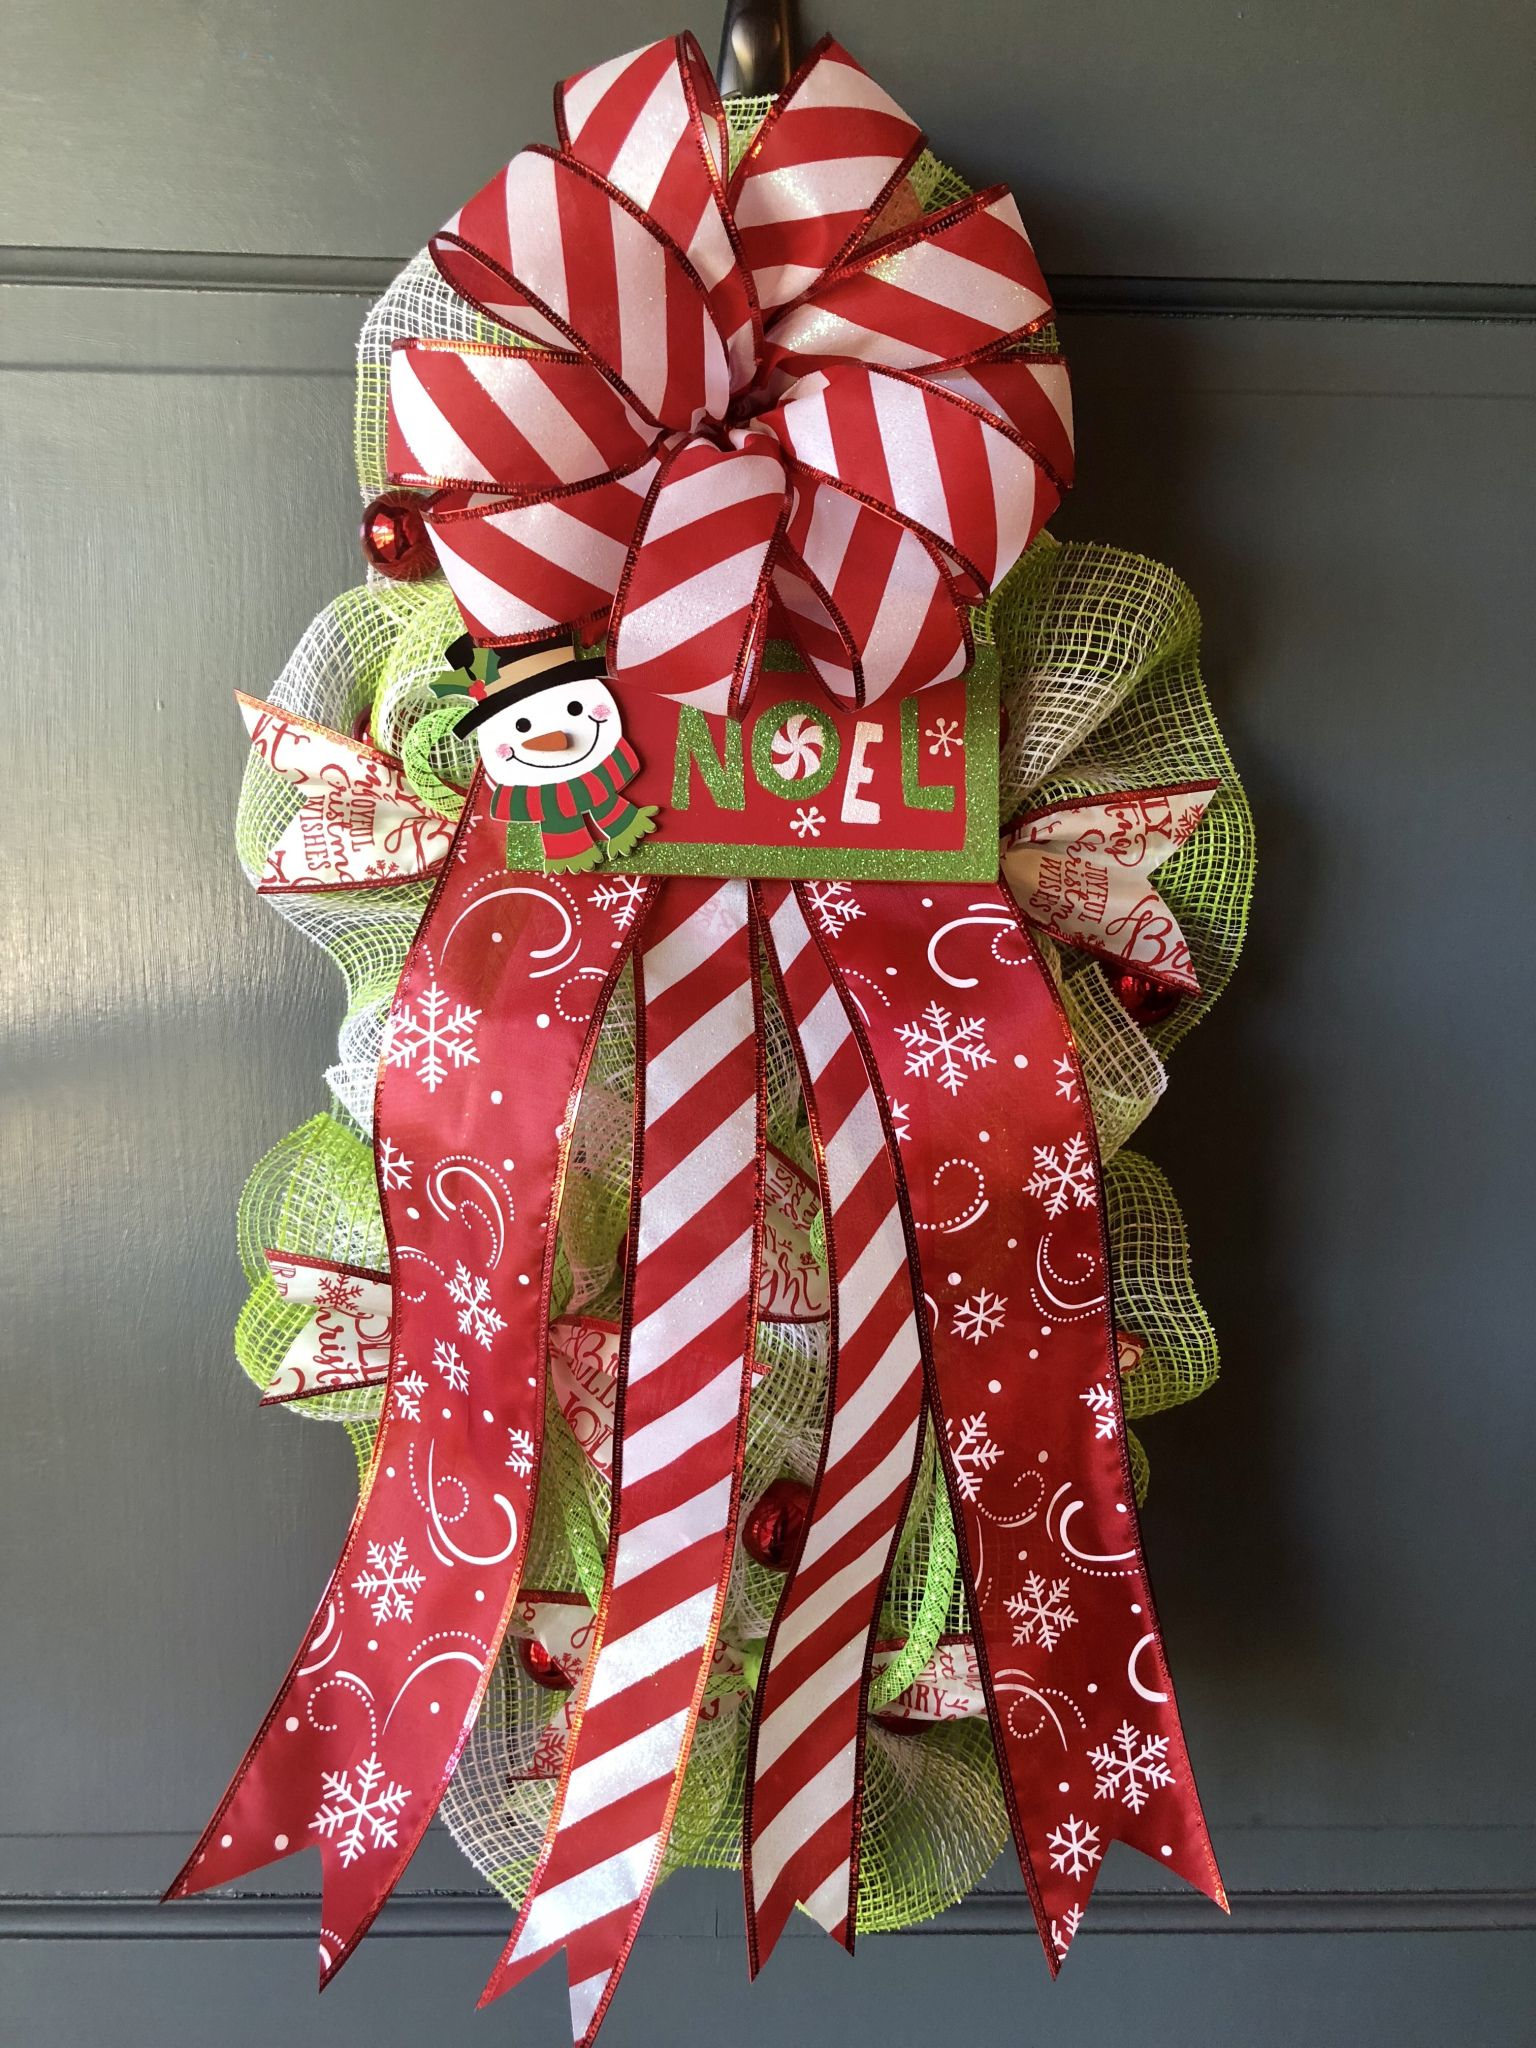 Christmas DIY Deco Mesh Swag Wreath Made Using The Ruffle